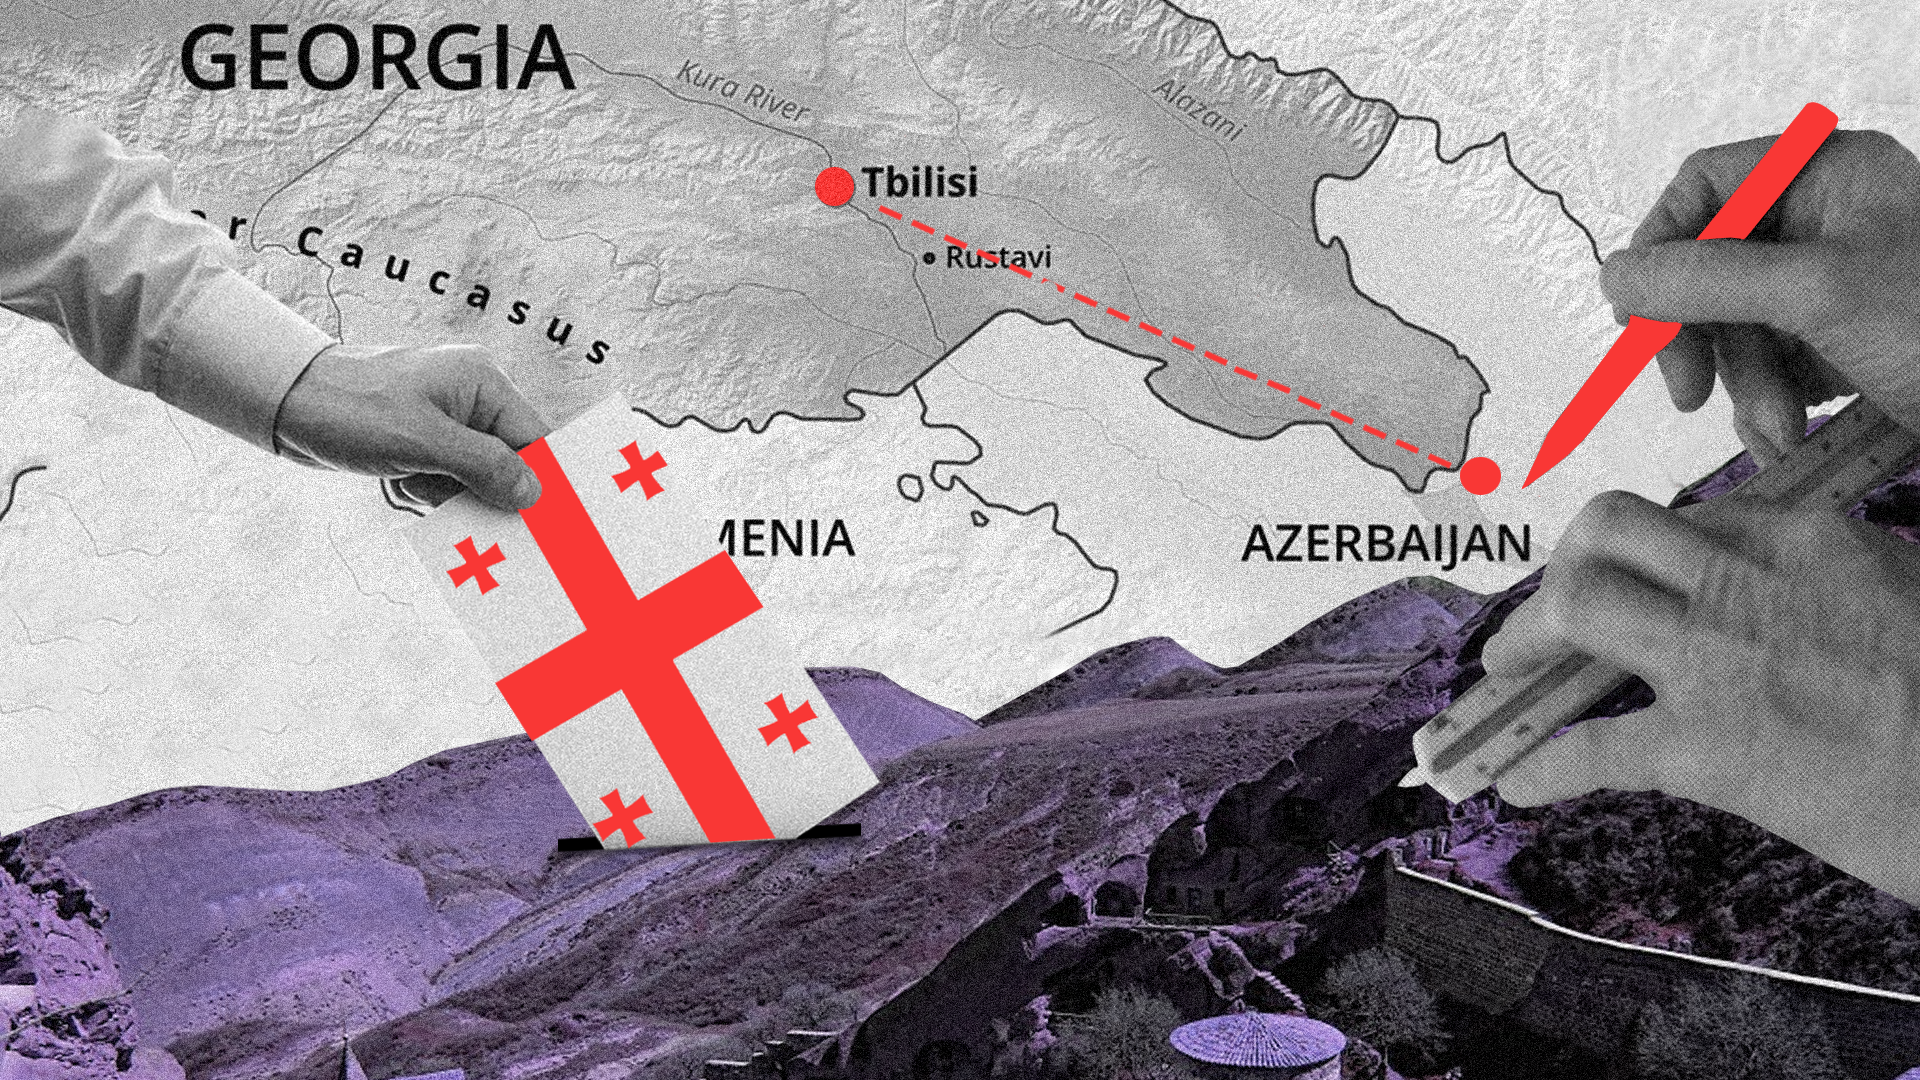 Georgia's parliamentary elections plagued by rekindled dispute about the border with Azerbaijan